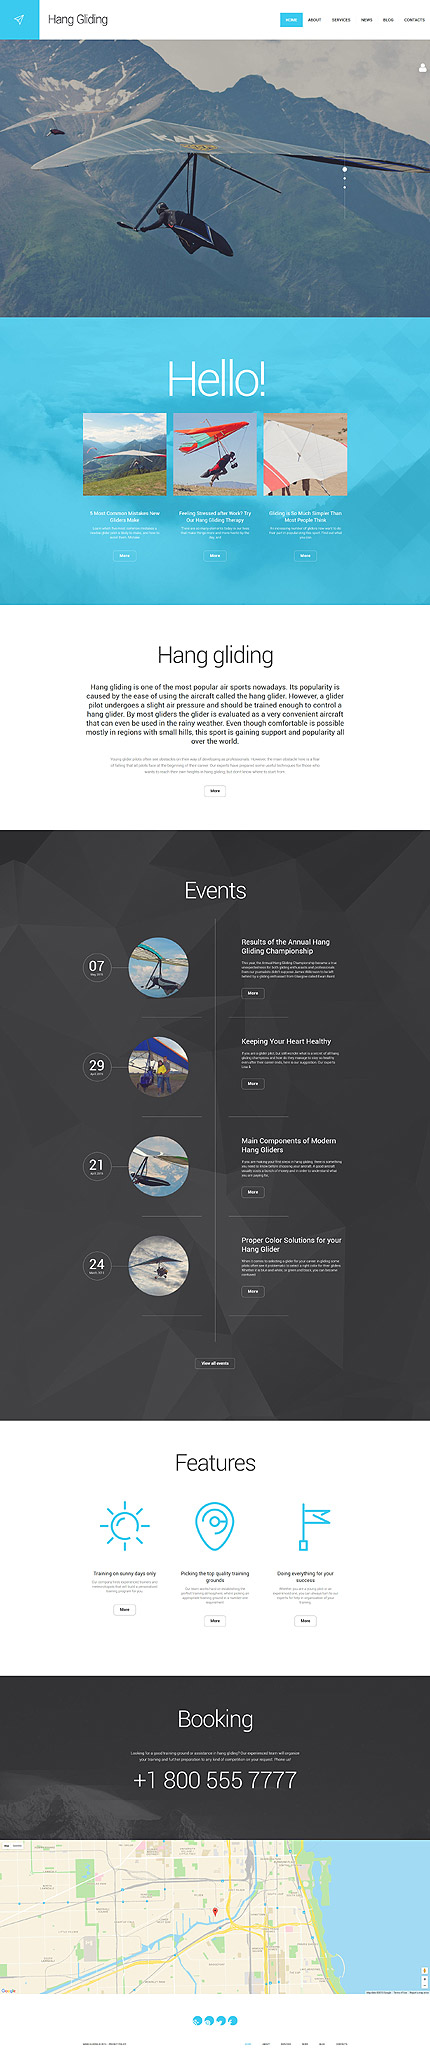 Template 55966 - Hang Gliding Responsive WordPress Theme with Carousel, Slider, Megamenu, Blog, Portfolio